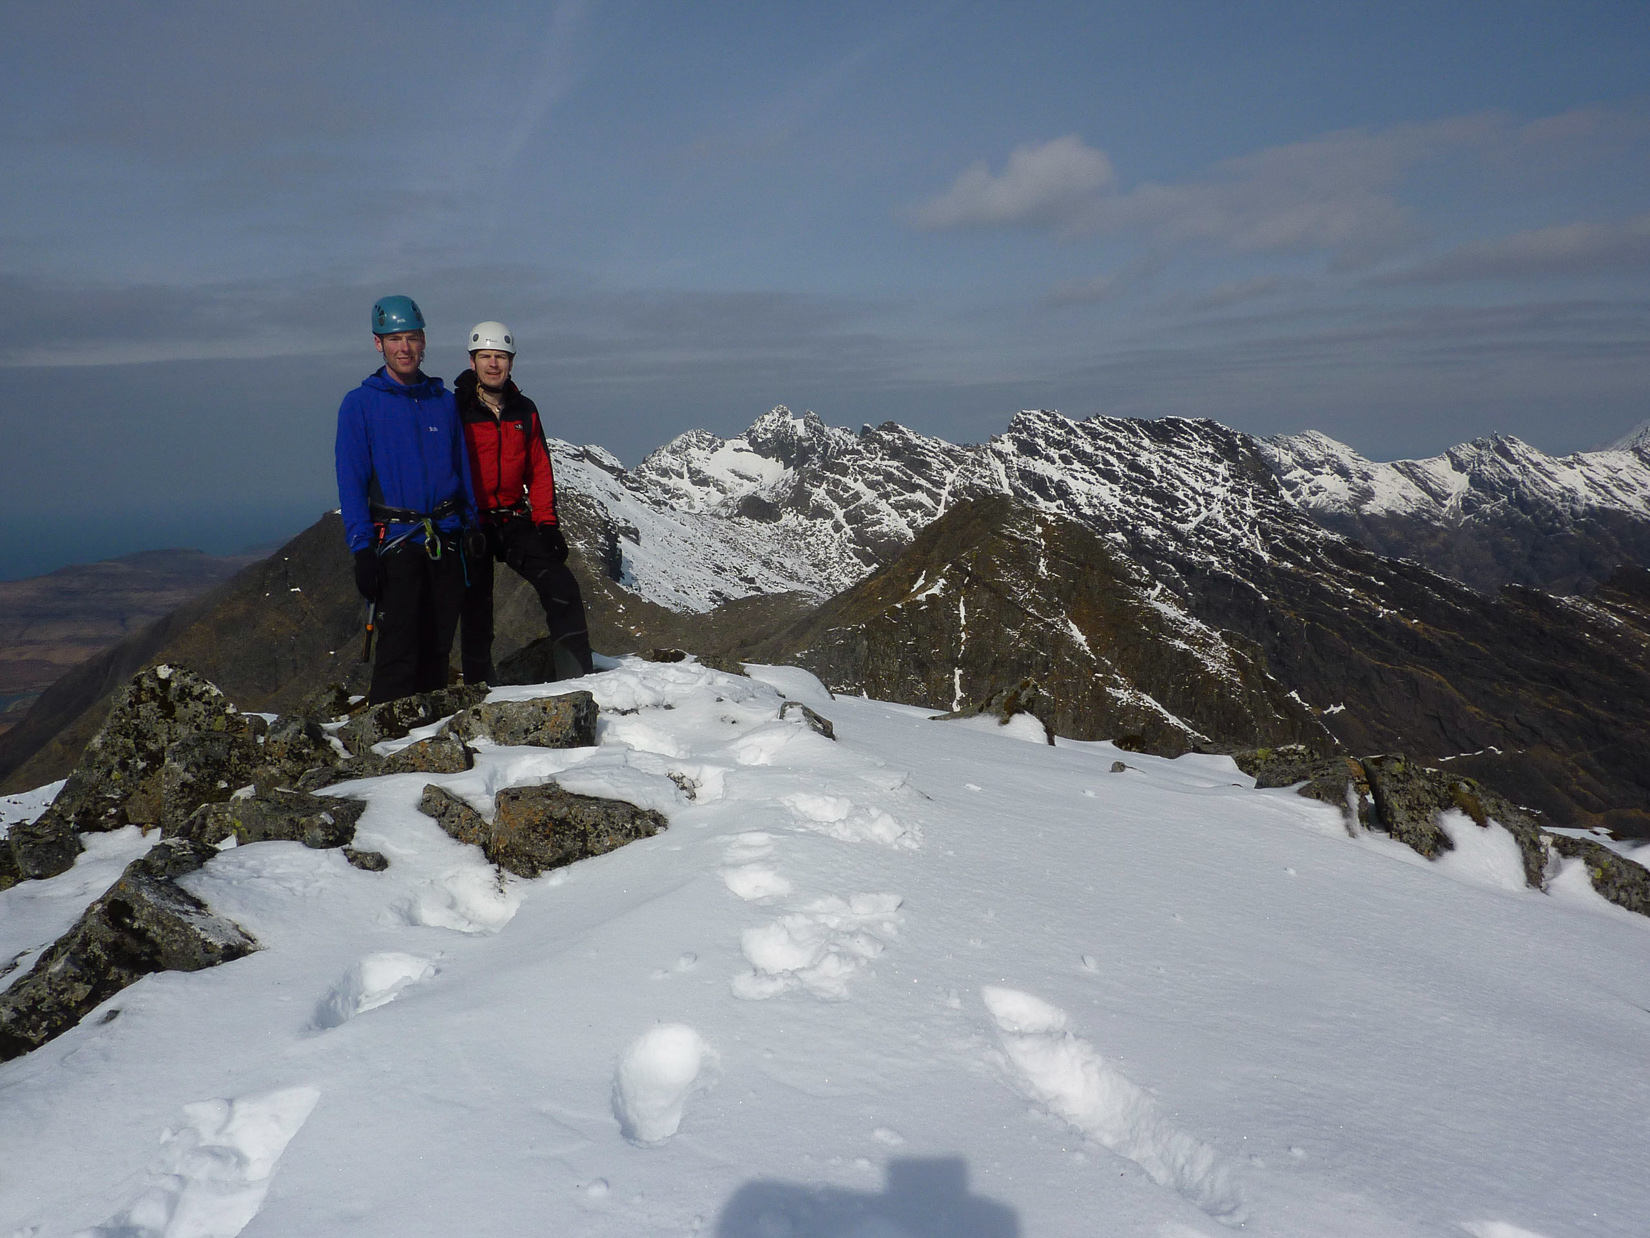 At the end of the ridge on Gars-bheinn